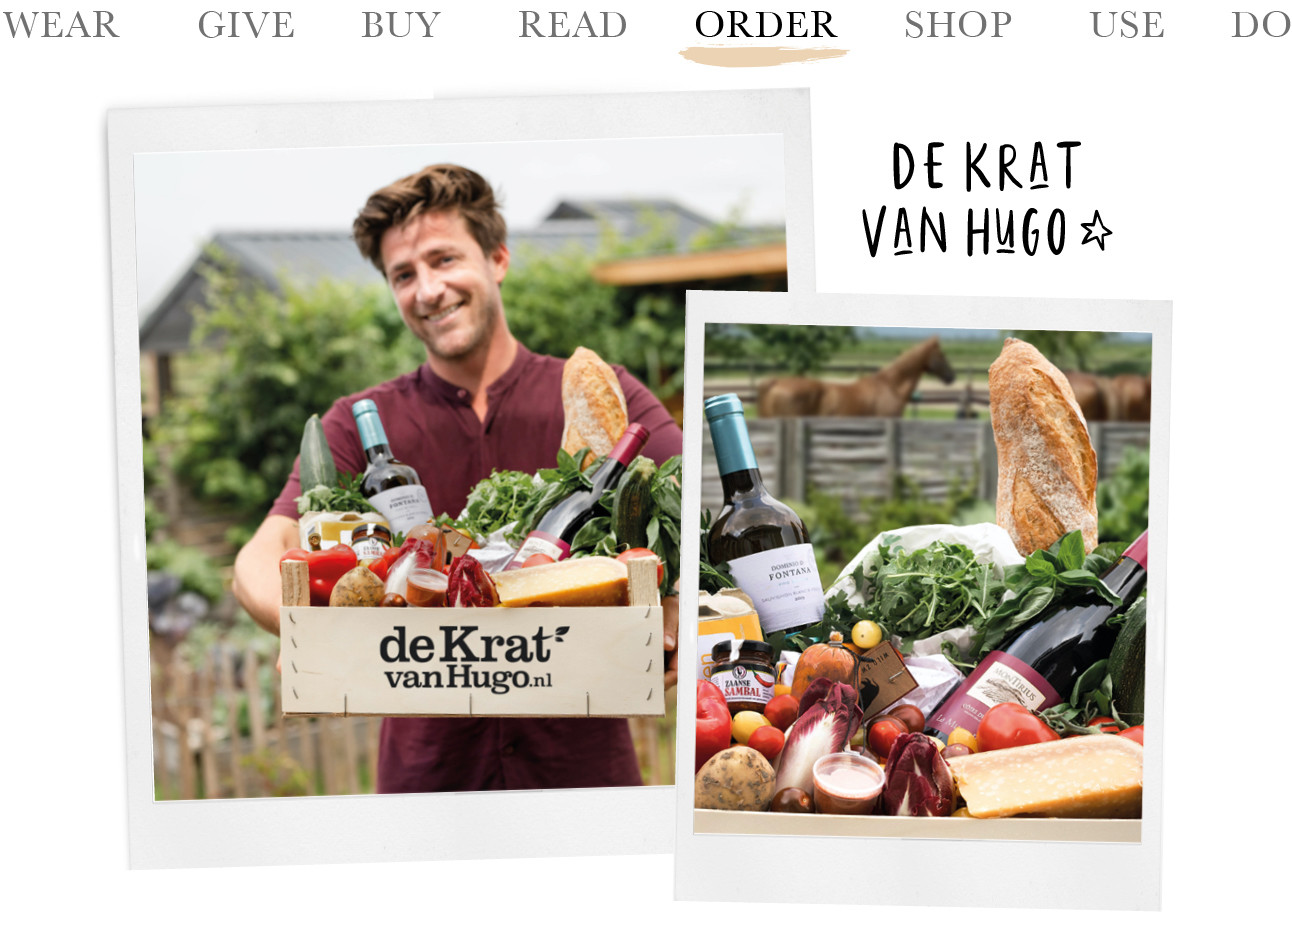 Today we order: De Krat van Hugo